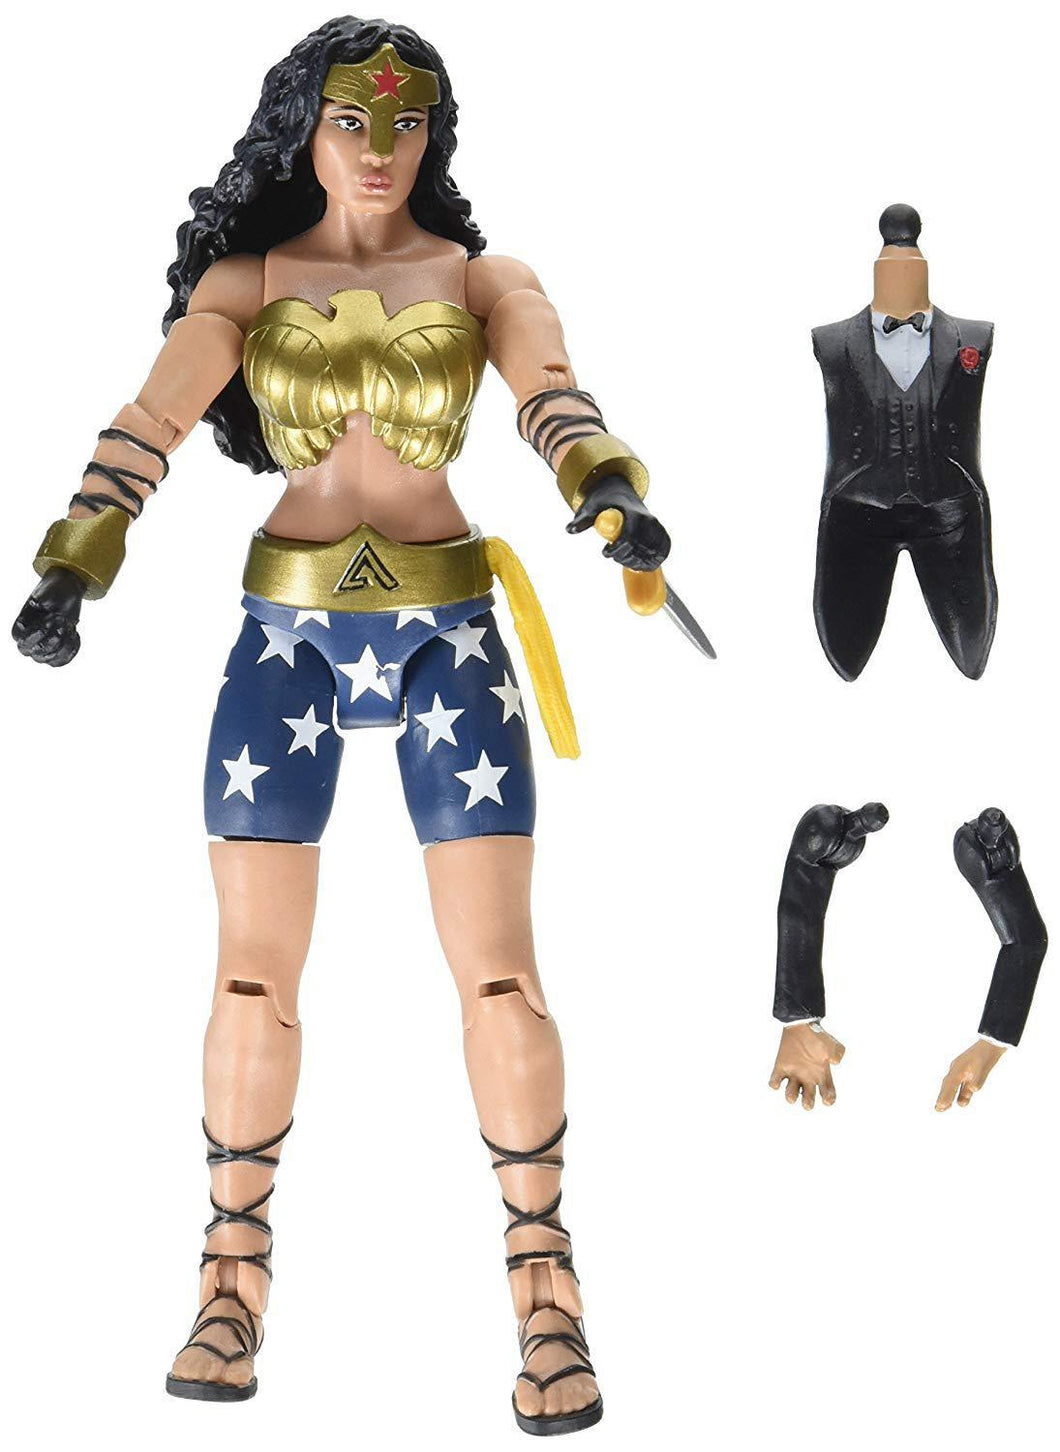 DC Comics Multiverse Batman The Dark Knight Returns Wonder Woman